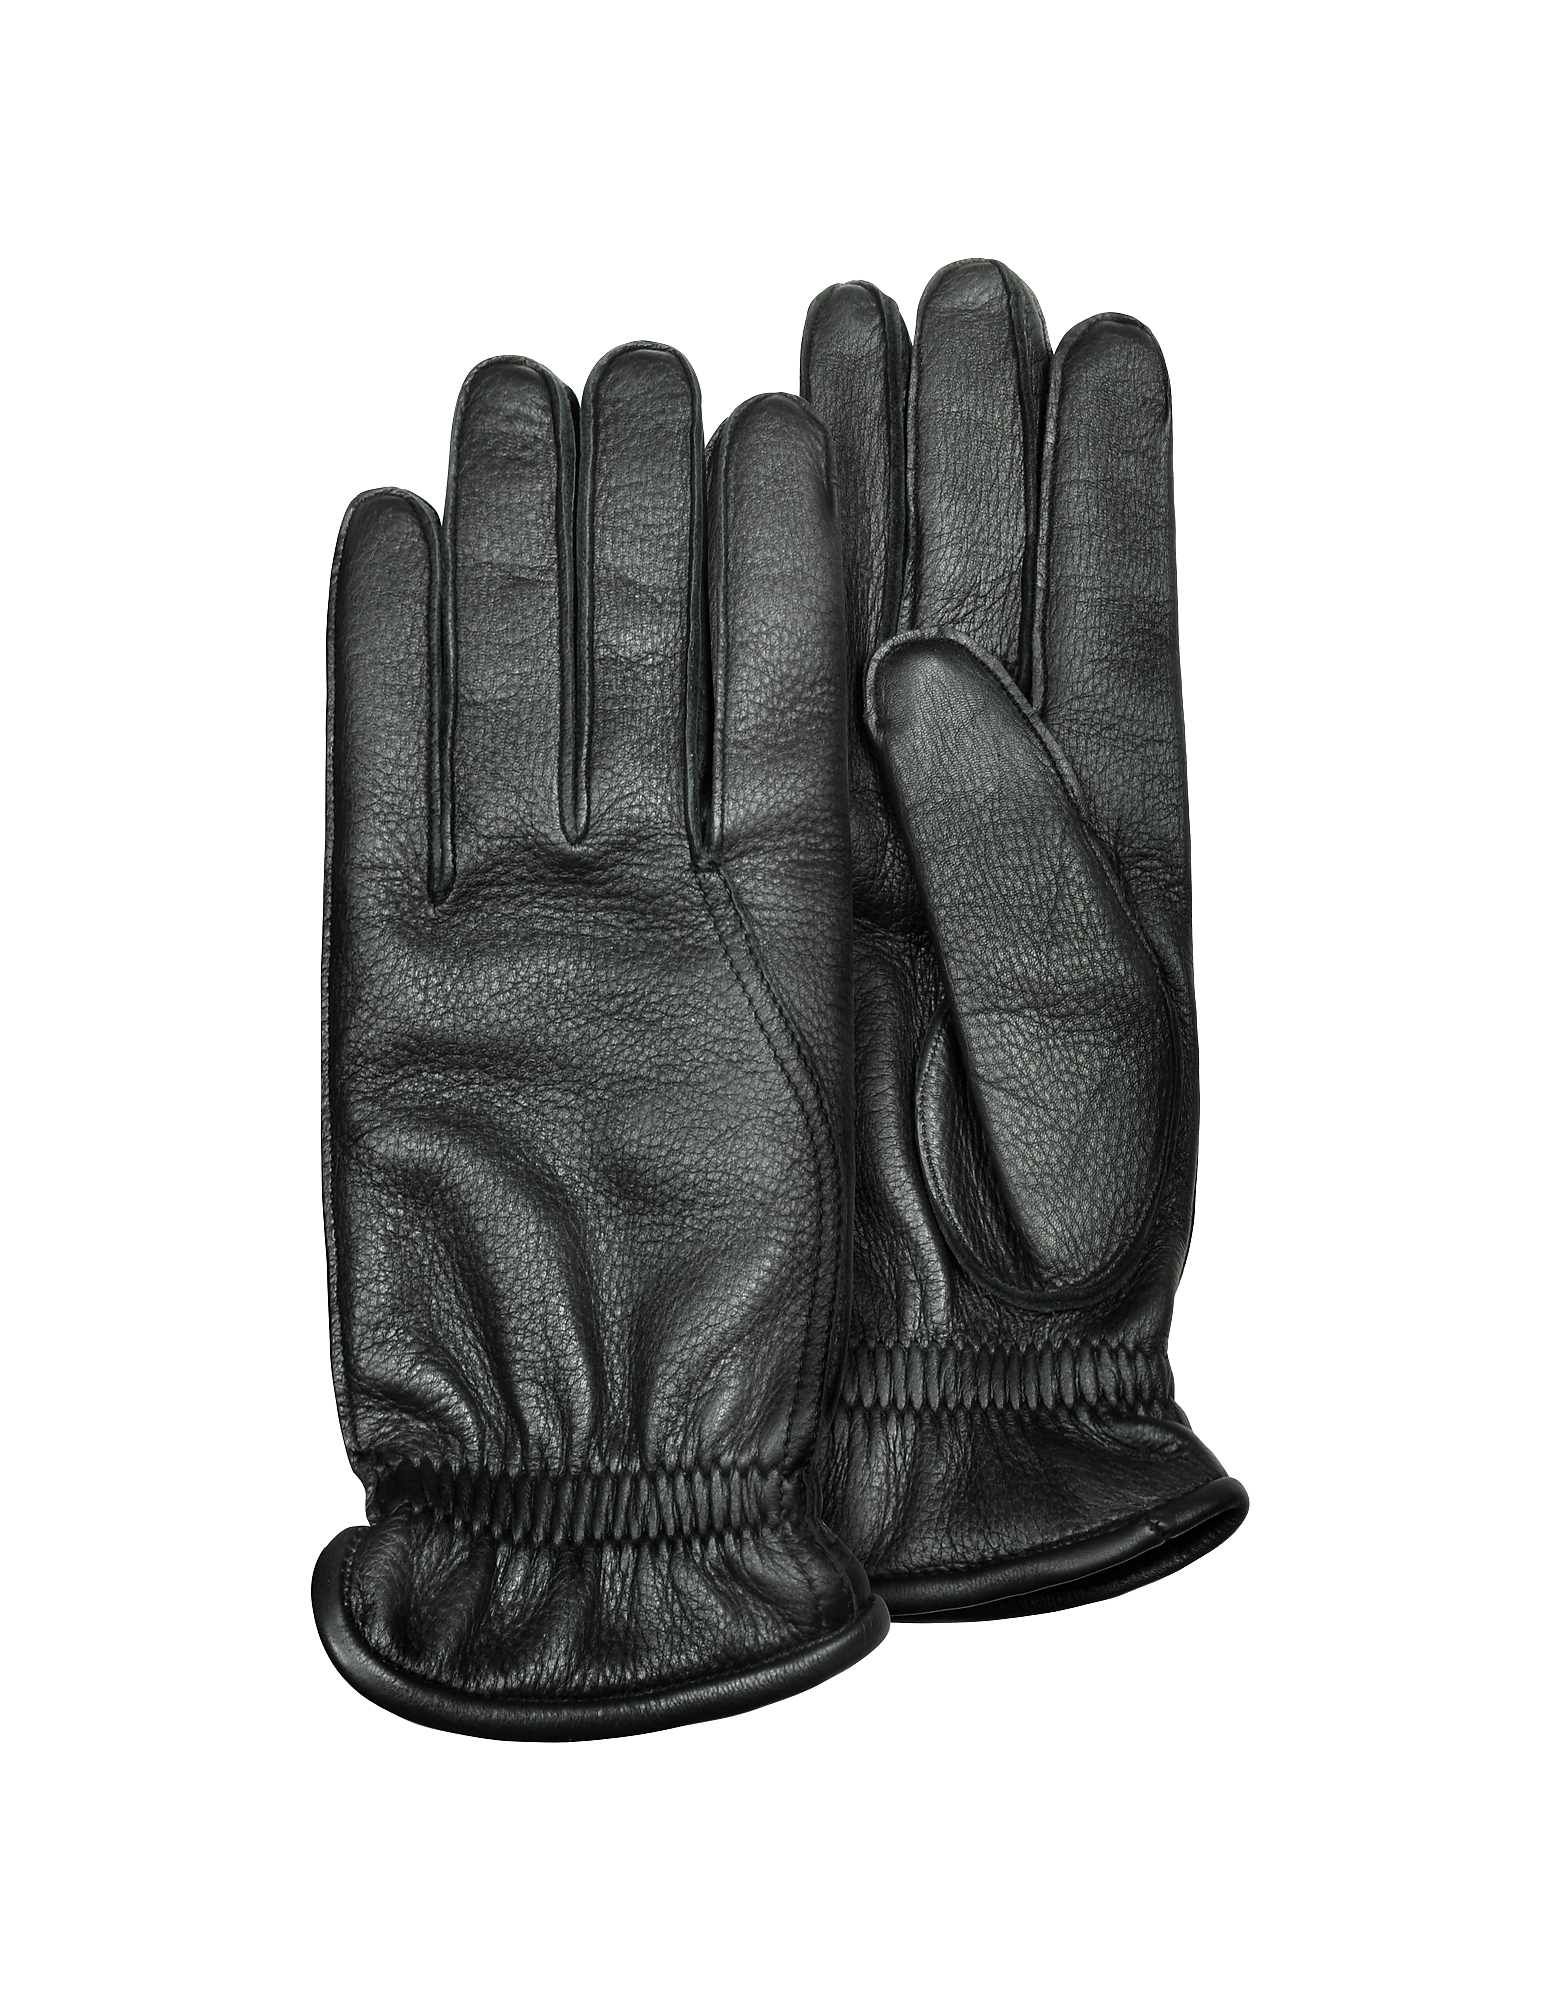 Pineider Men's Gloves, Men's Black Deerskin Leather Gloves w/ Cashmere Lining